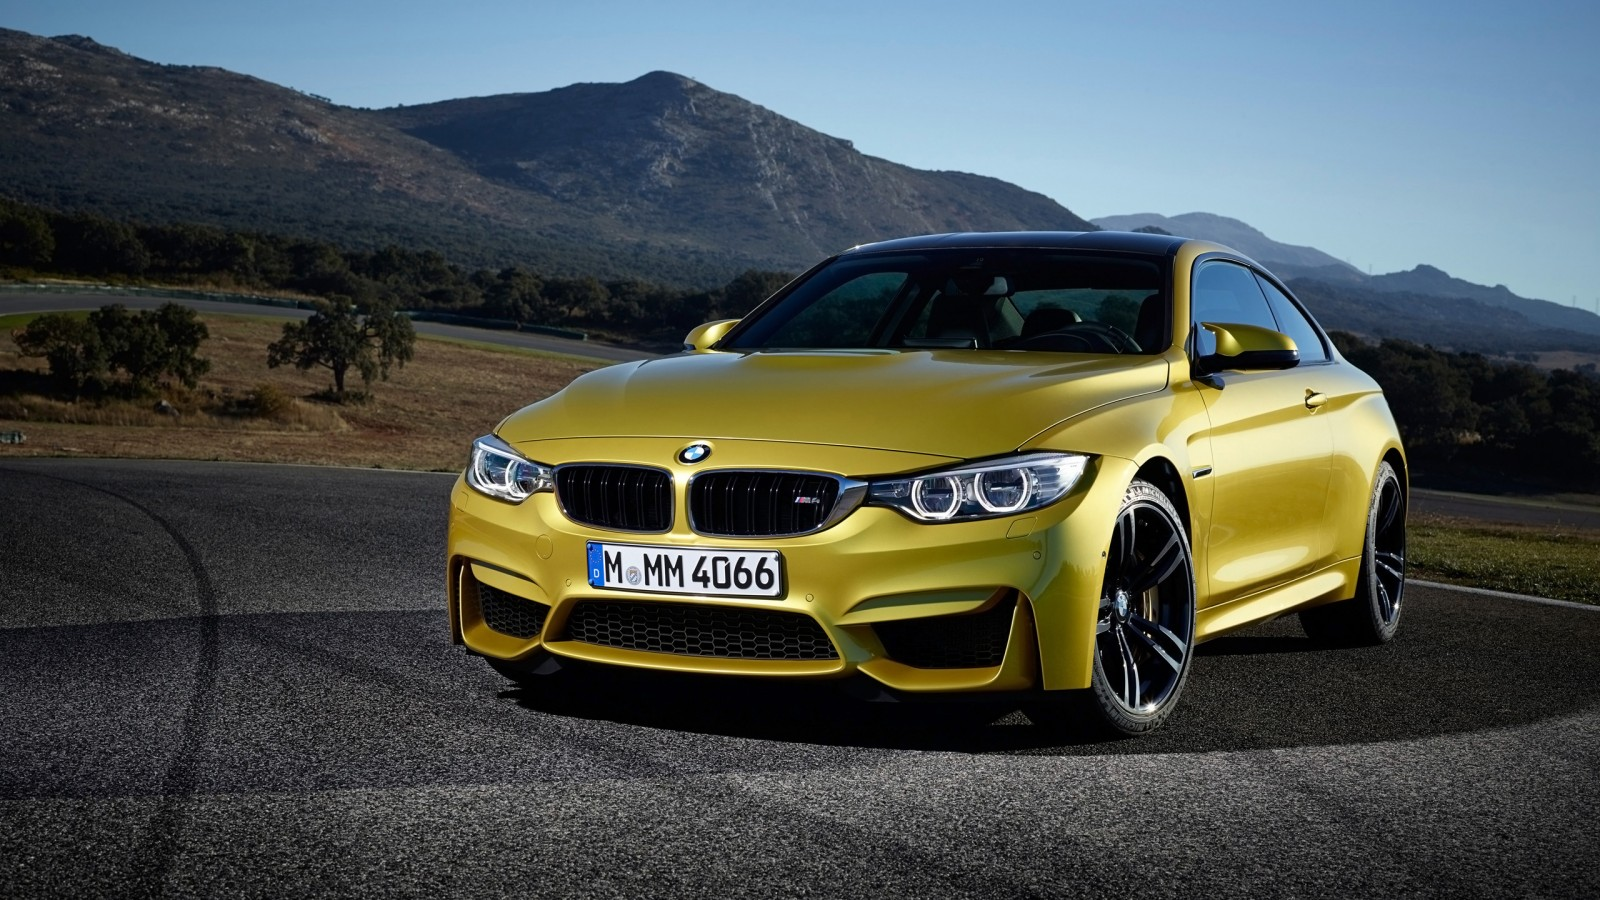 2014 Hd Wallpapers: 2014 BMW M4 Coupe Wallpaper